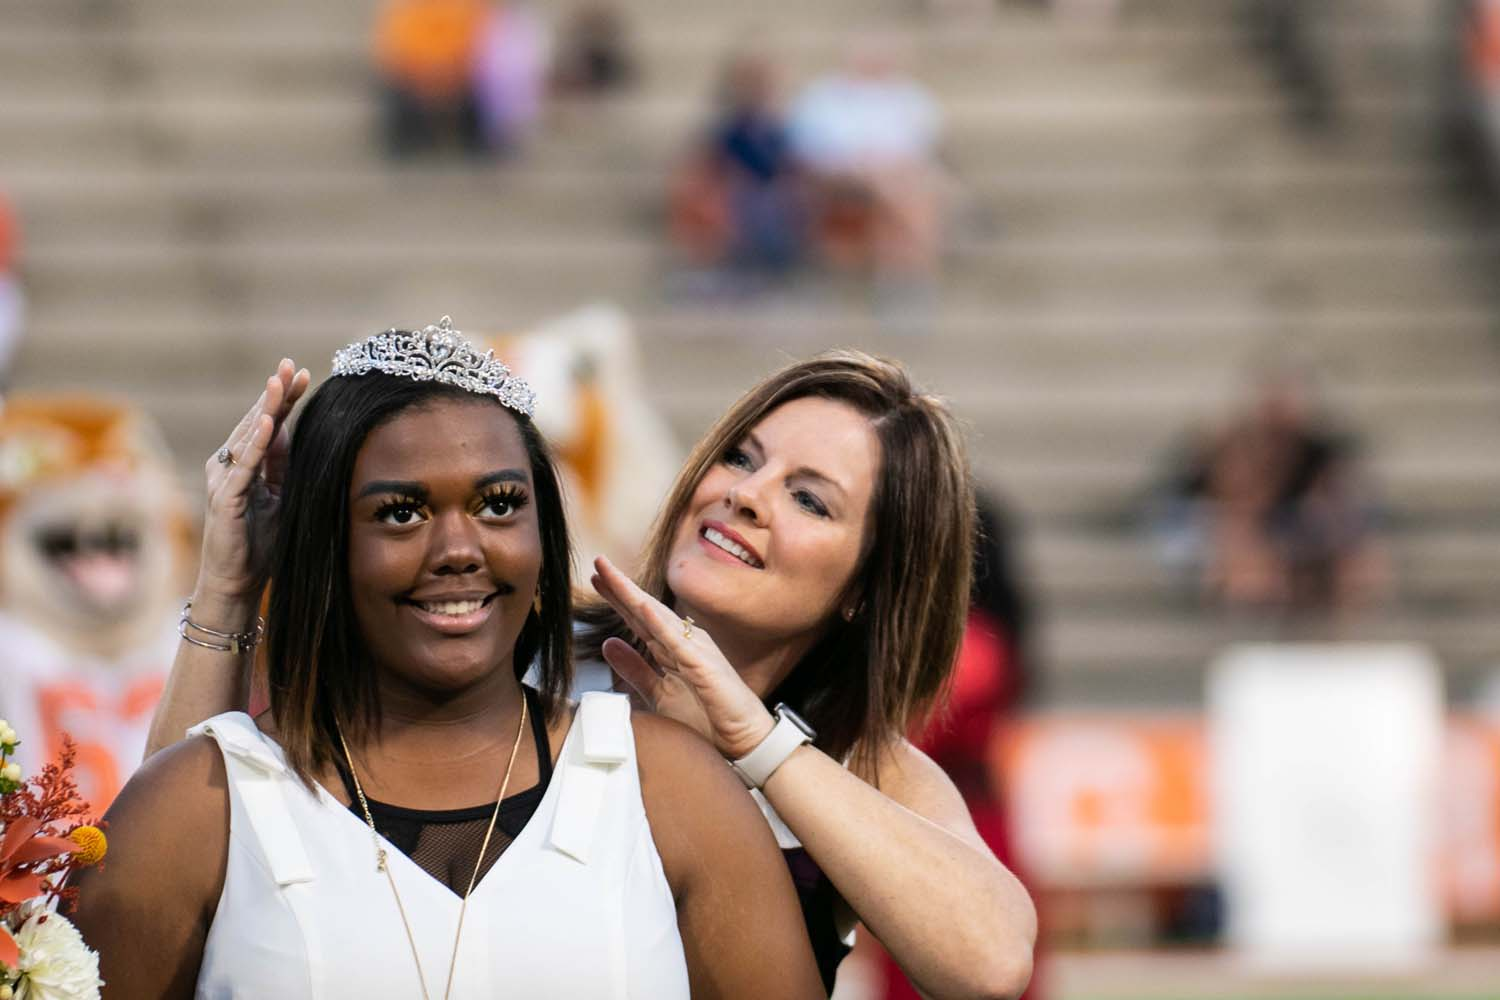 Principal Carla Dupree crowns drum major Skylar Black as the 2019 homecoming queen. Announcement and crowning occurred during pregame activities.